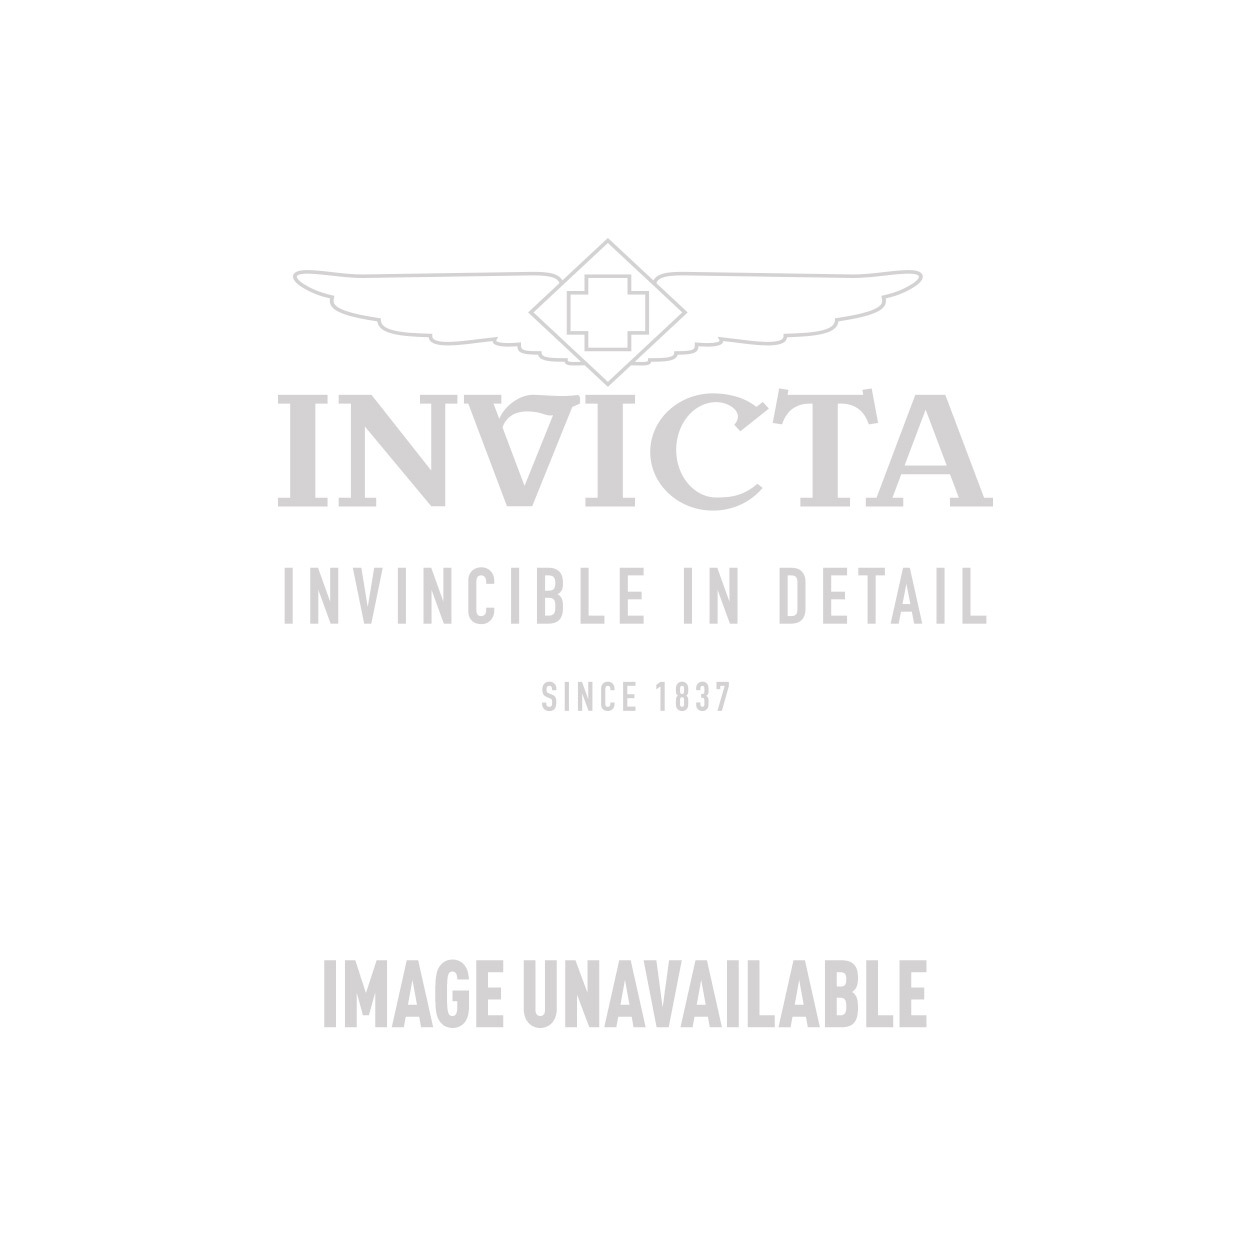 a2a2a4f6a2b Invicta Venom watch in Stainless Steel at InvictaStores.com